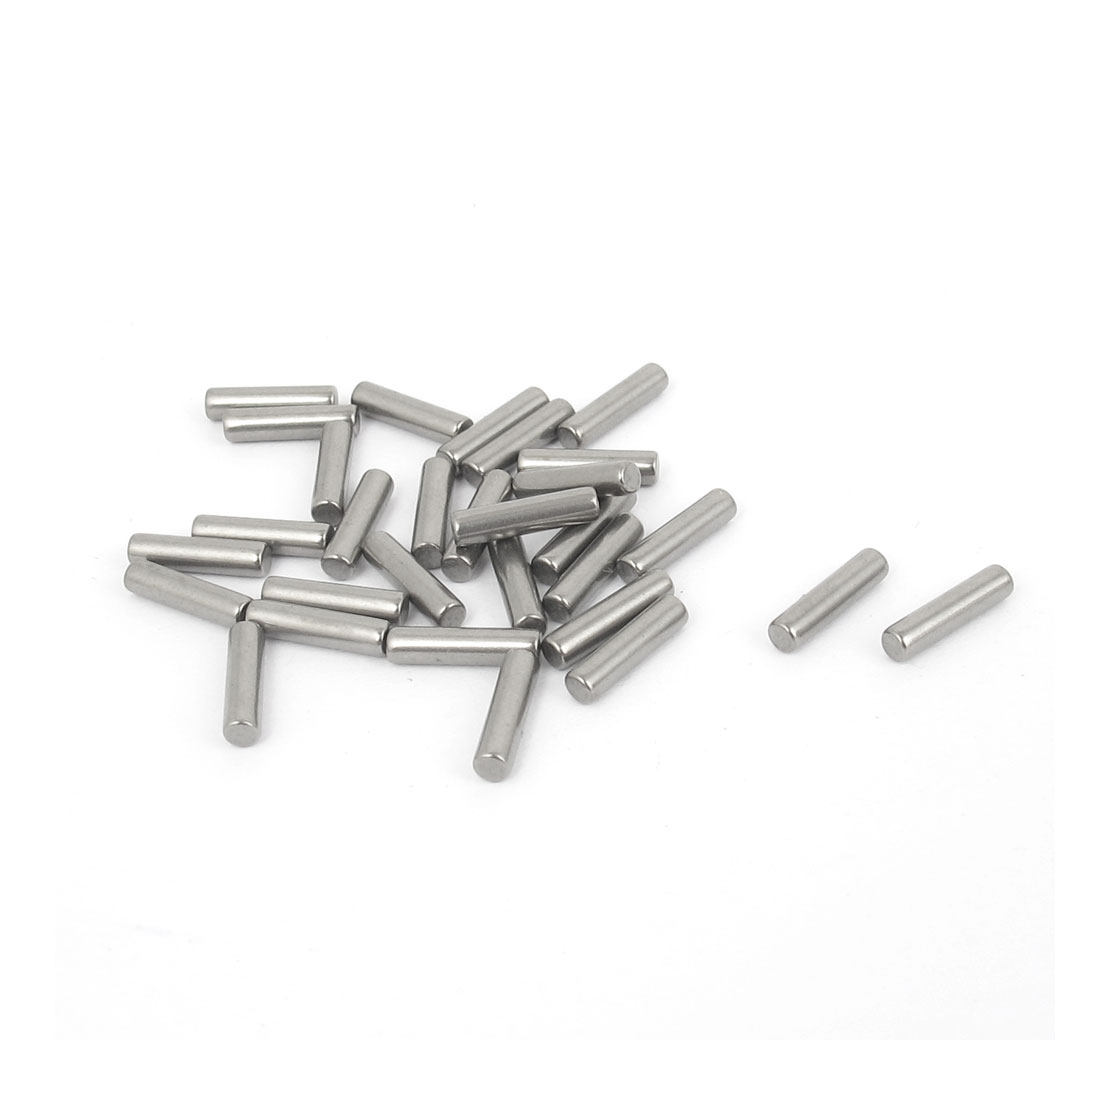 2.5mm x 10mm 304 Stainless Steel Dowel Pins Fasten Elements Silver Tone 30pcs